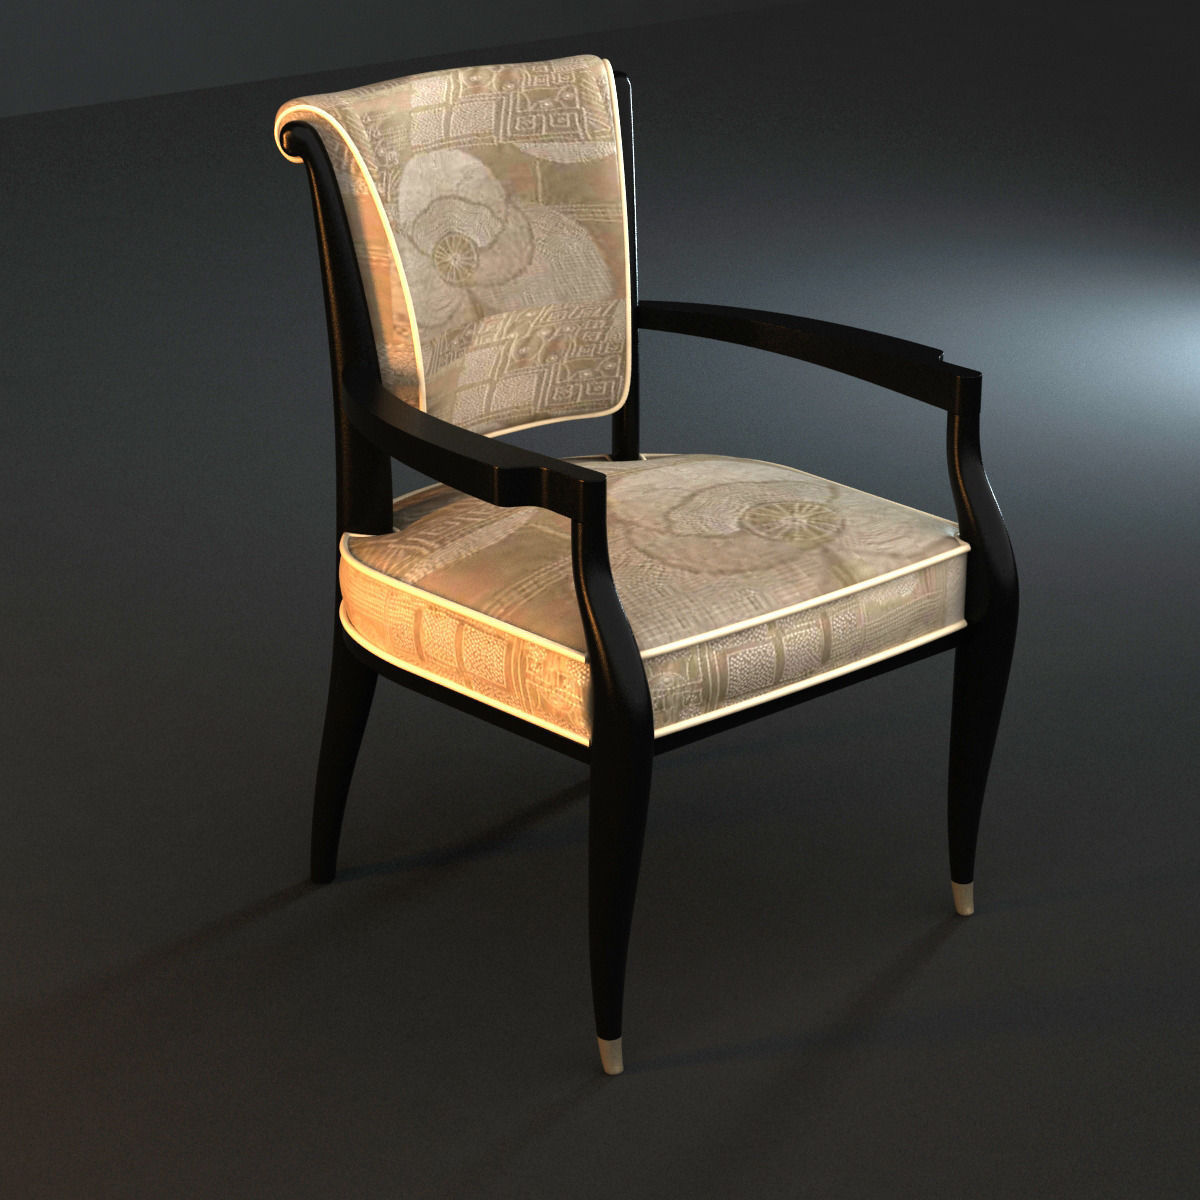 Colombo Stile Classic Chair